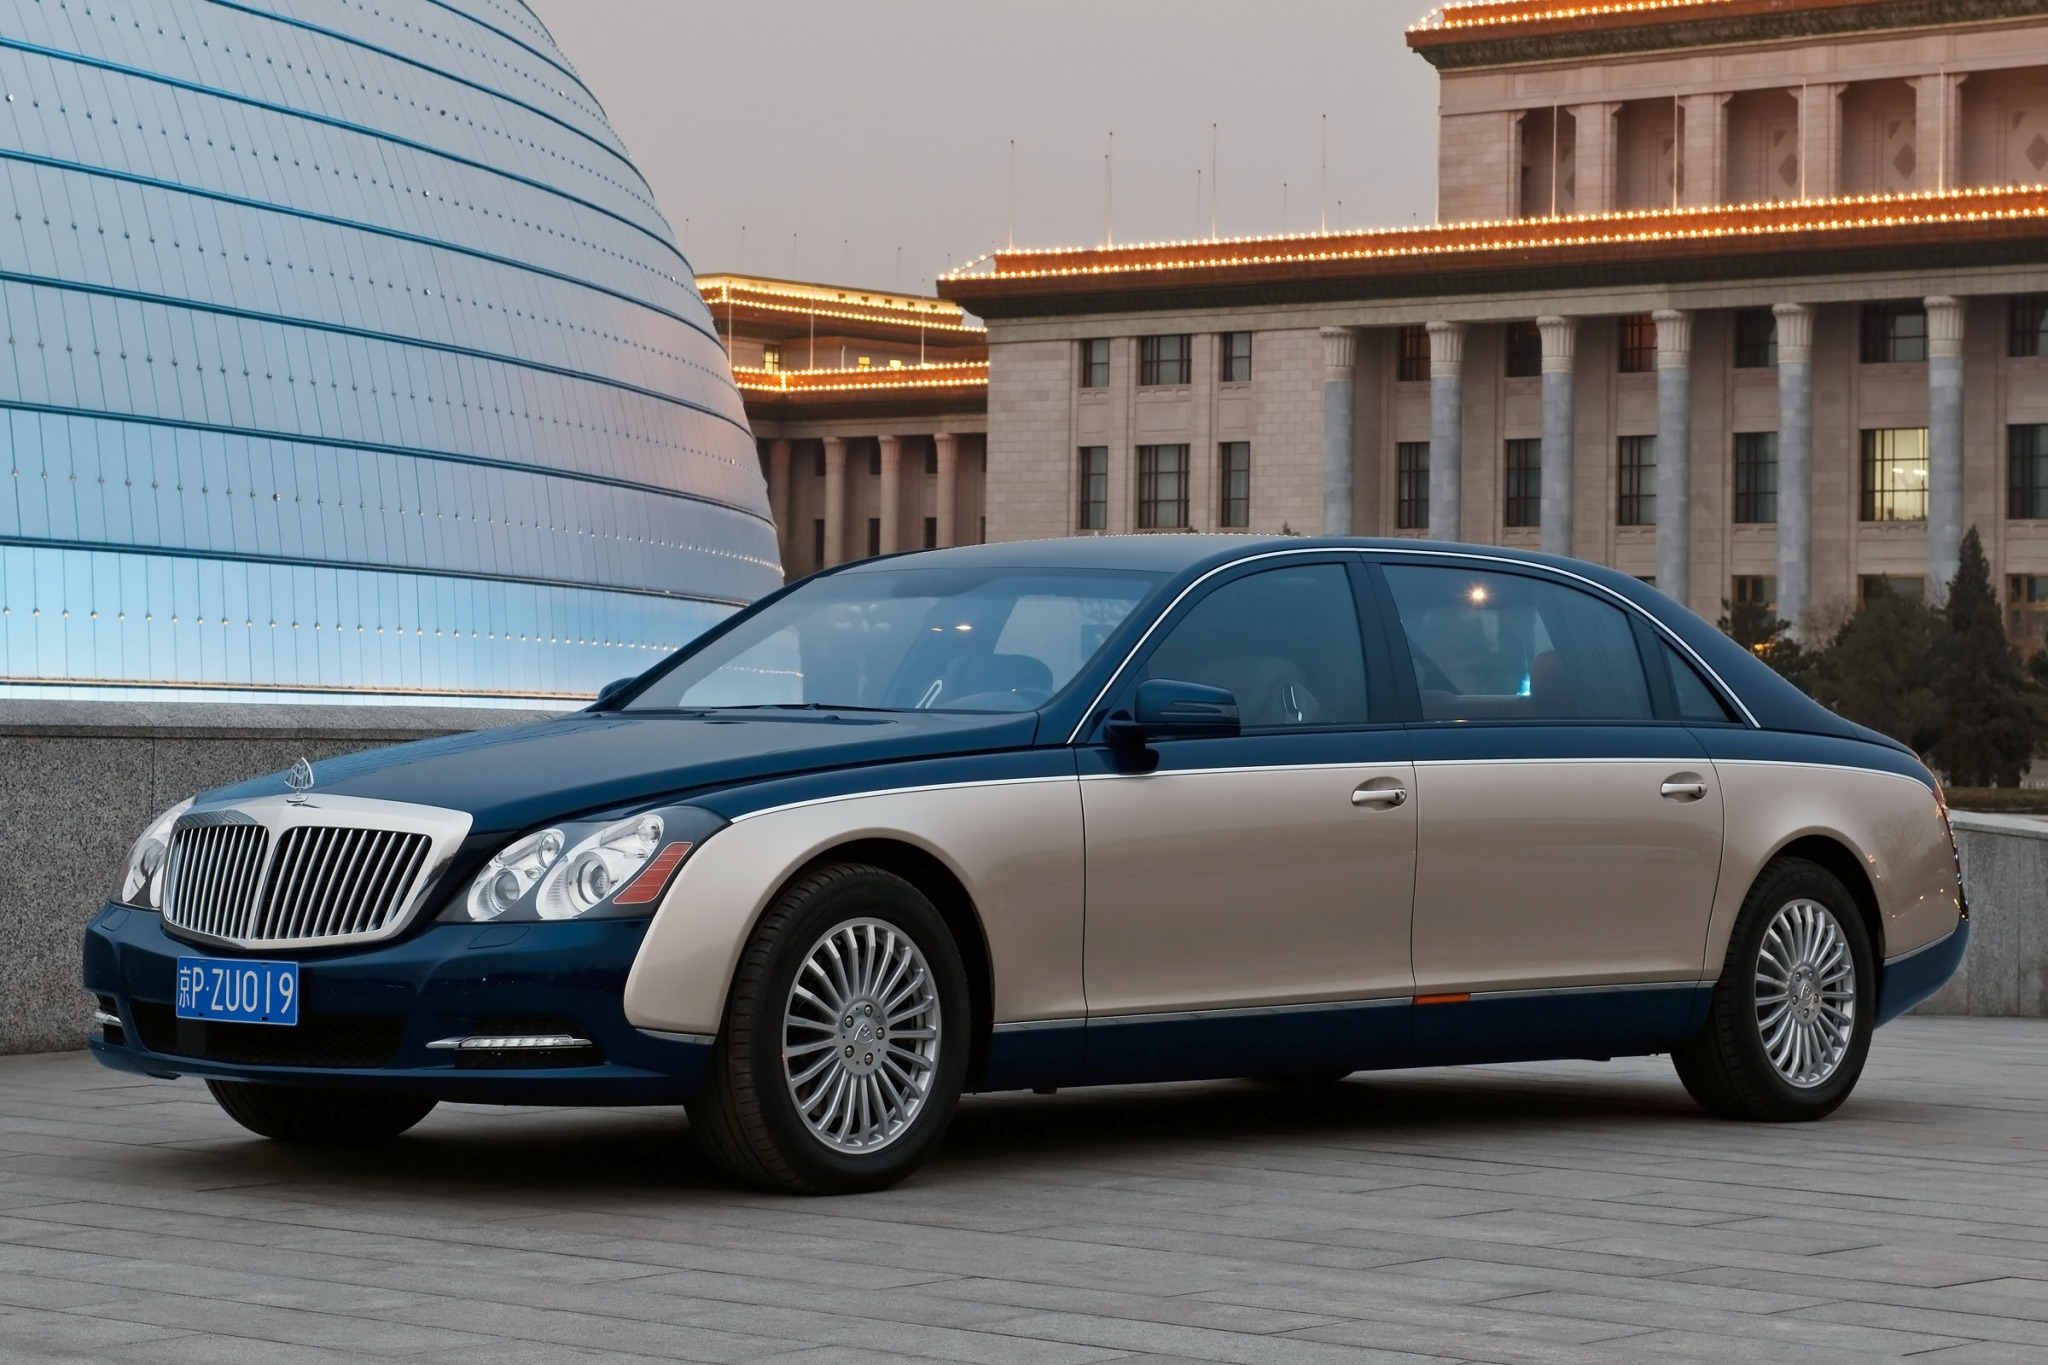 2012 Maybach 62 Sedan Rea interior #1